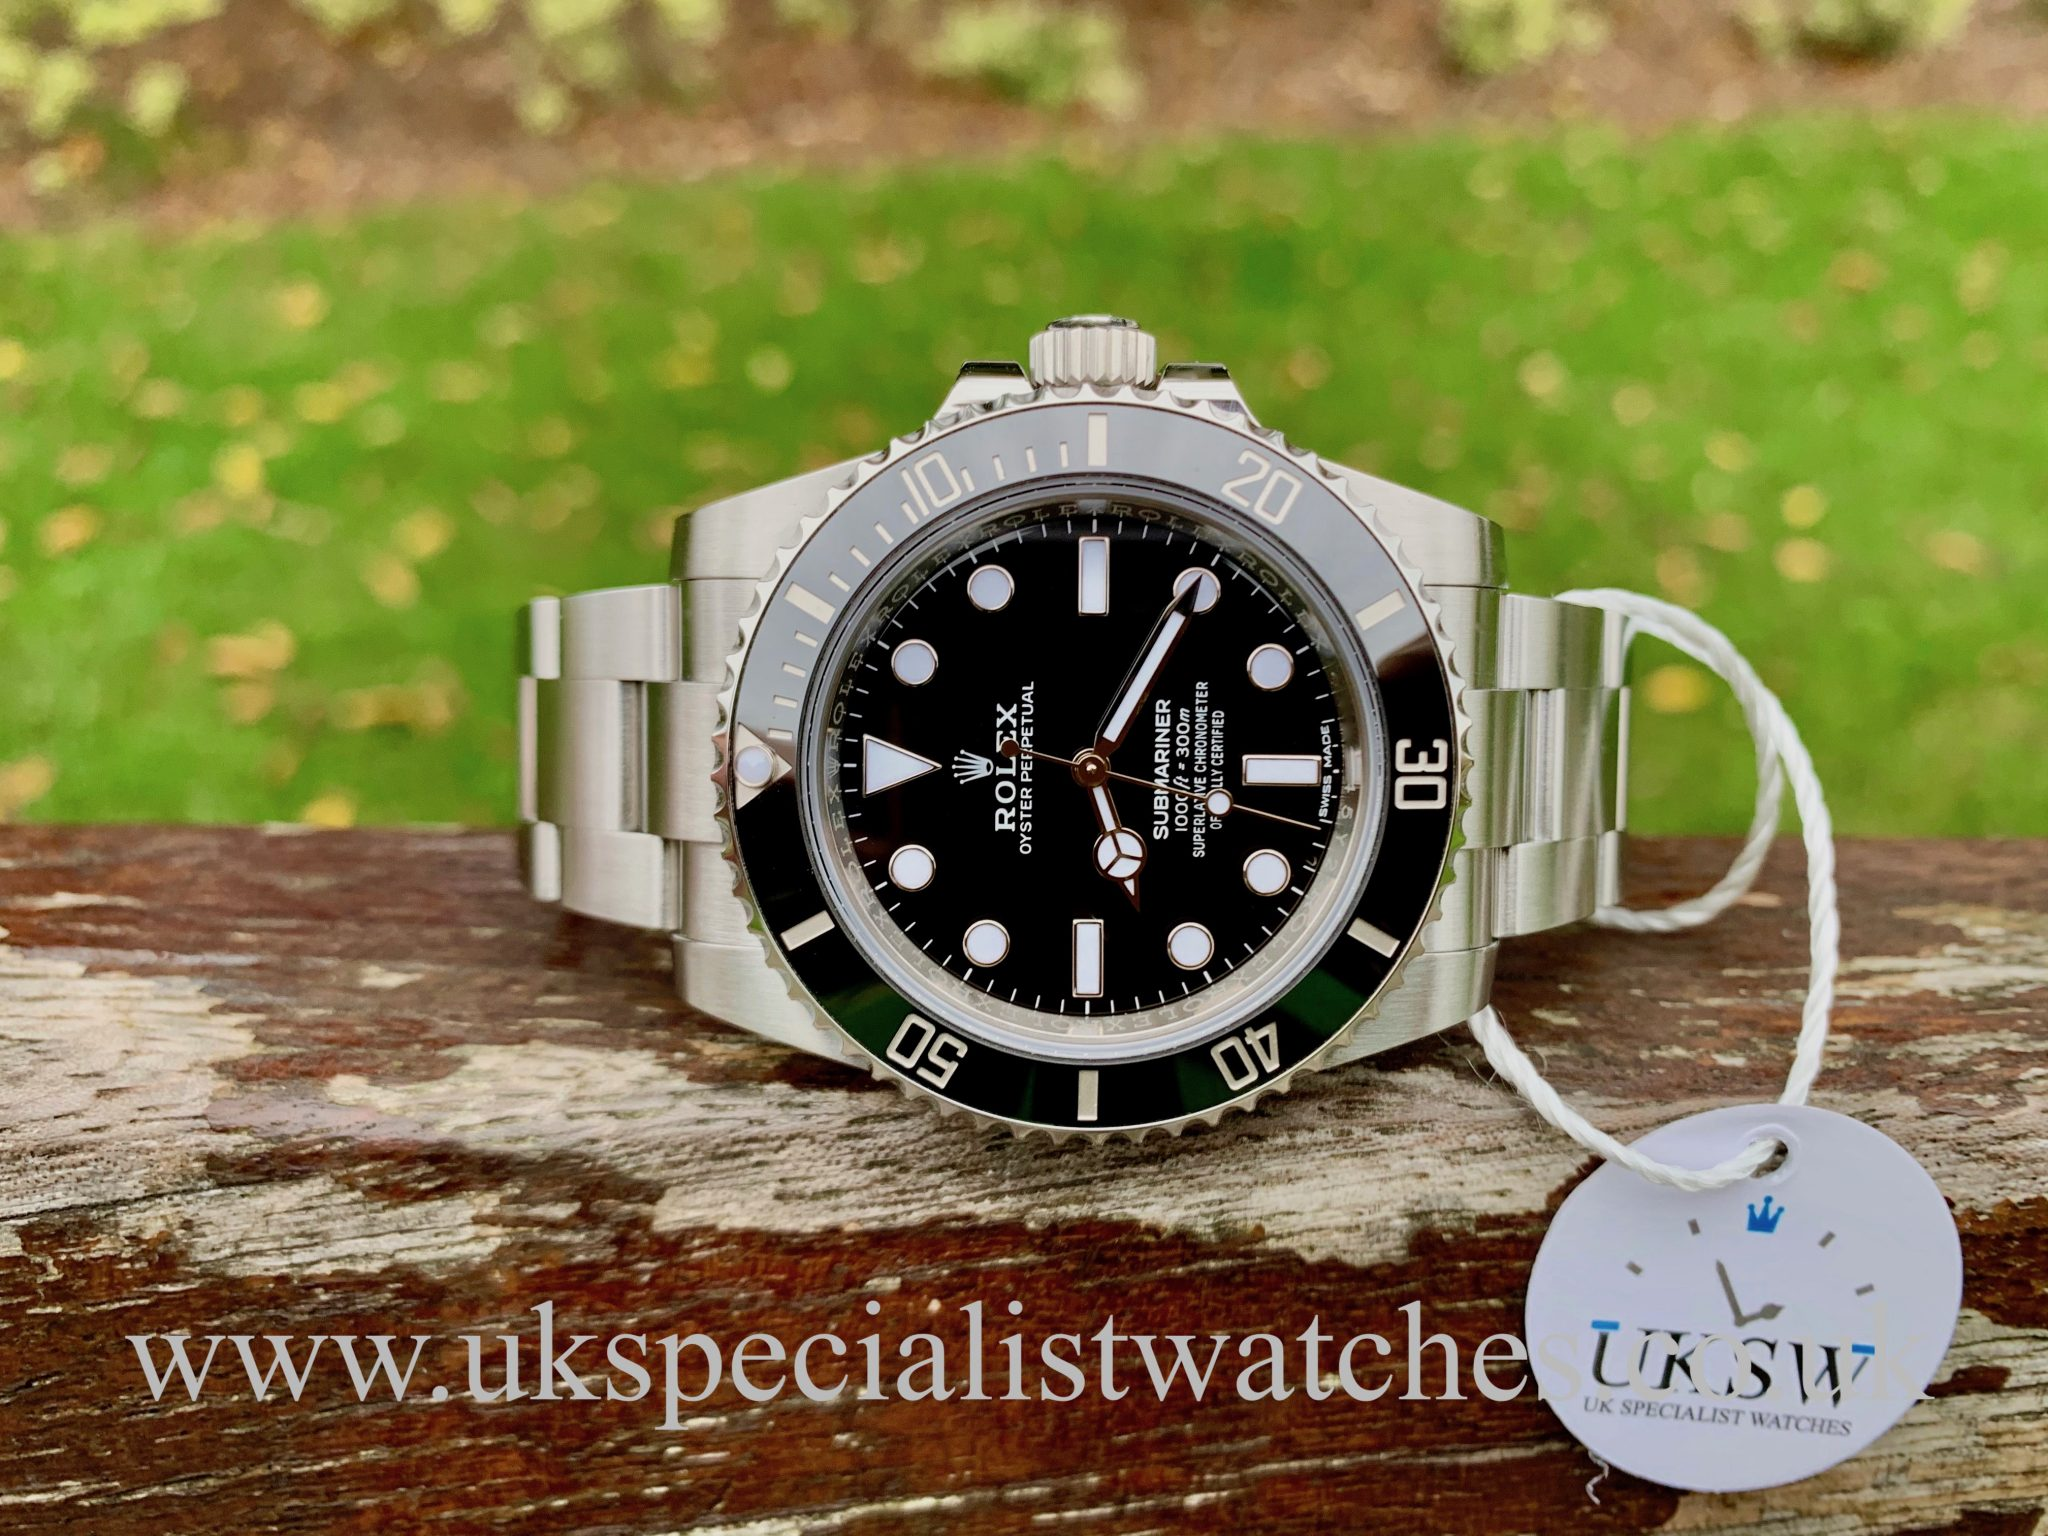 ROLEX SUBMARINER NON-DATE – CERAMIC – 114060 DISCONTINUED